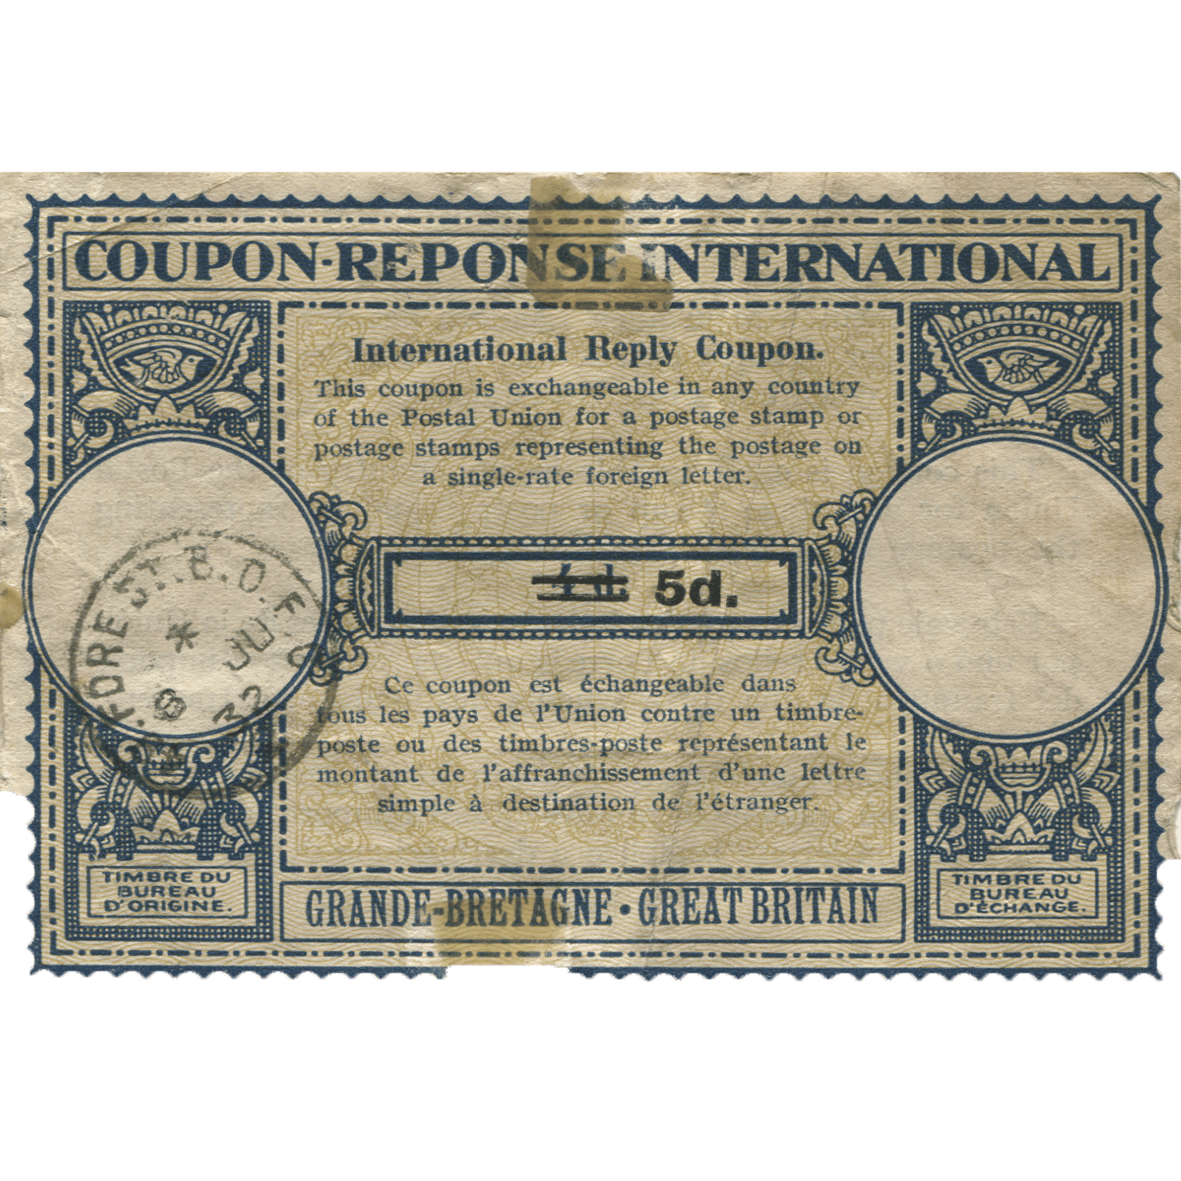 Postal Union, International Reply Coupon of 5 Pence (obverse)